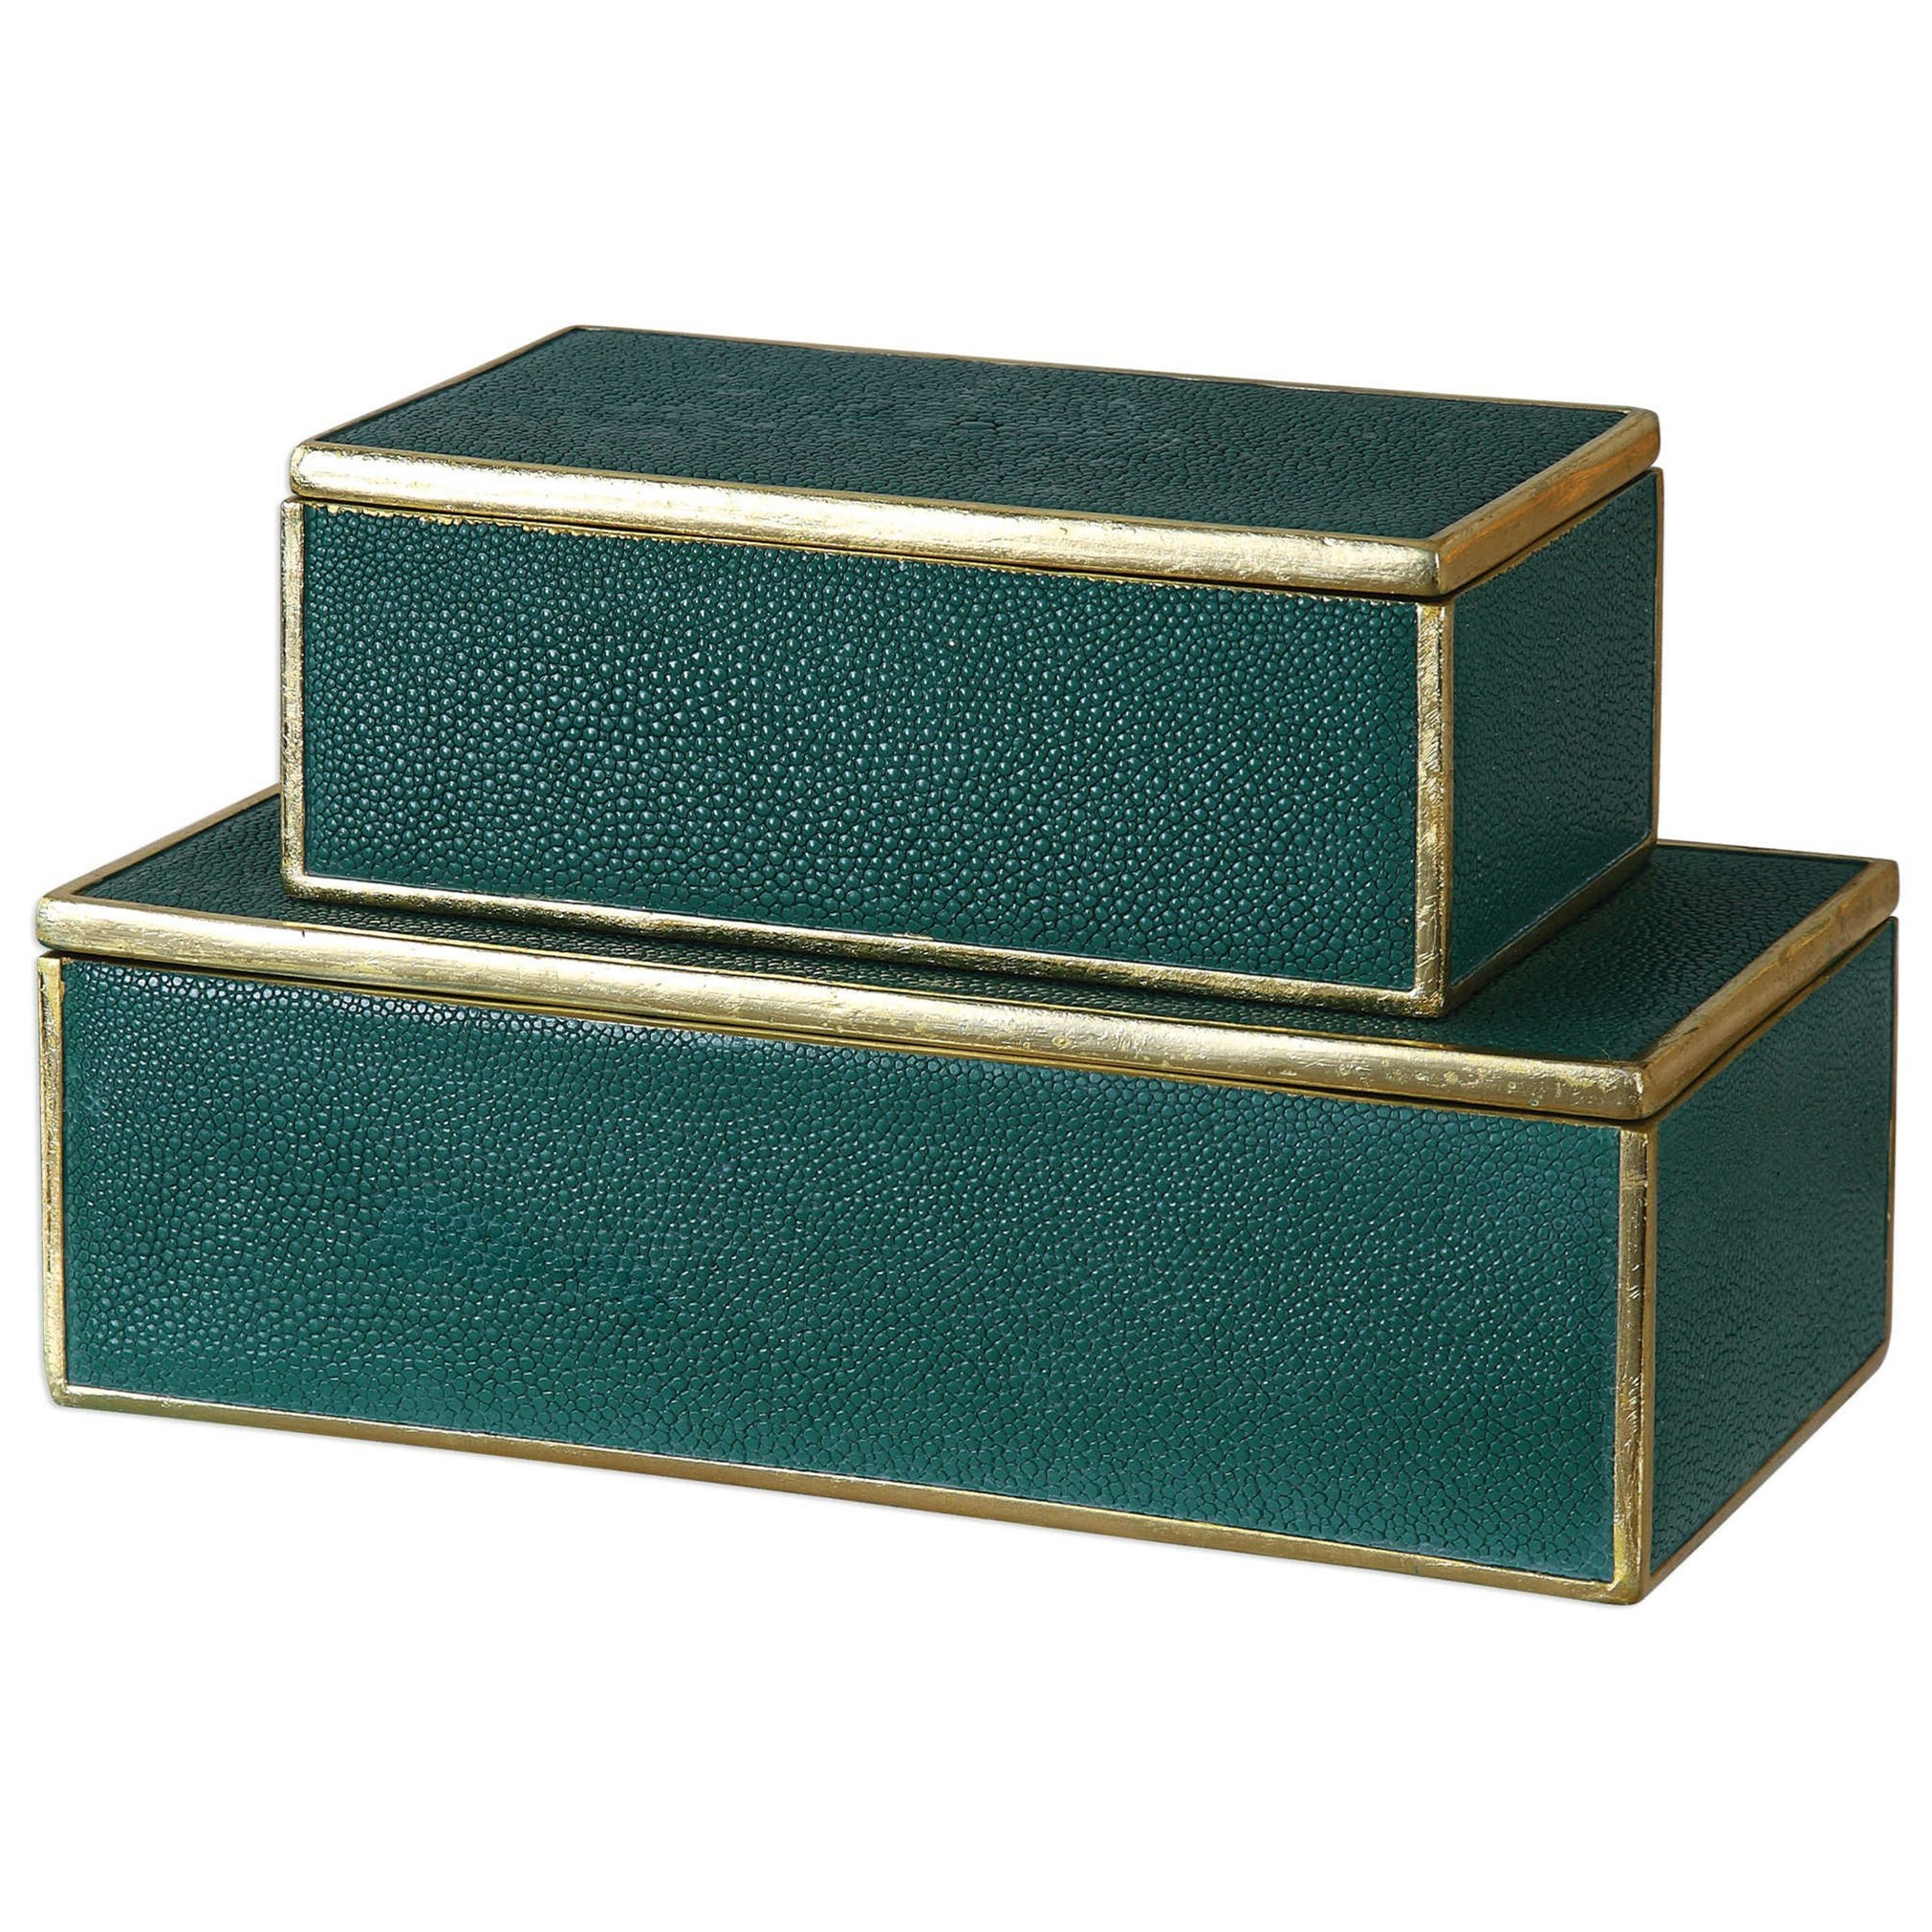 Accessories - Boxes Karis Emerald Green Boxes (Set of 2) by Uttermost at Dunk & Bright Furniture